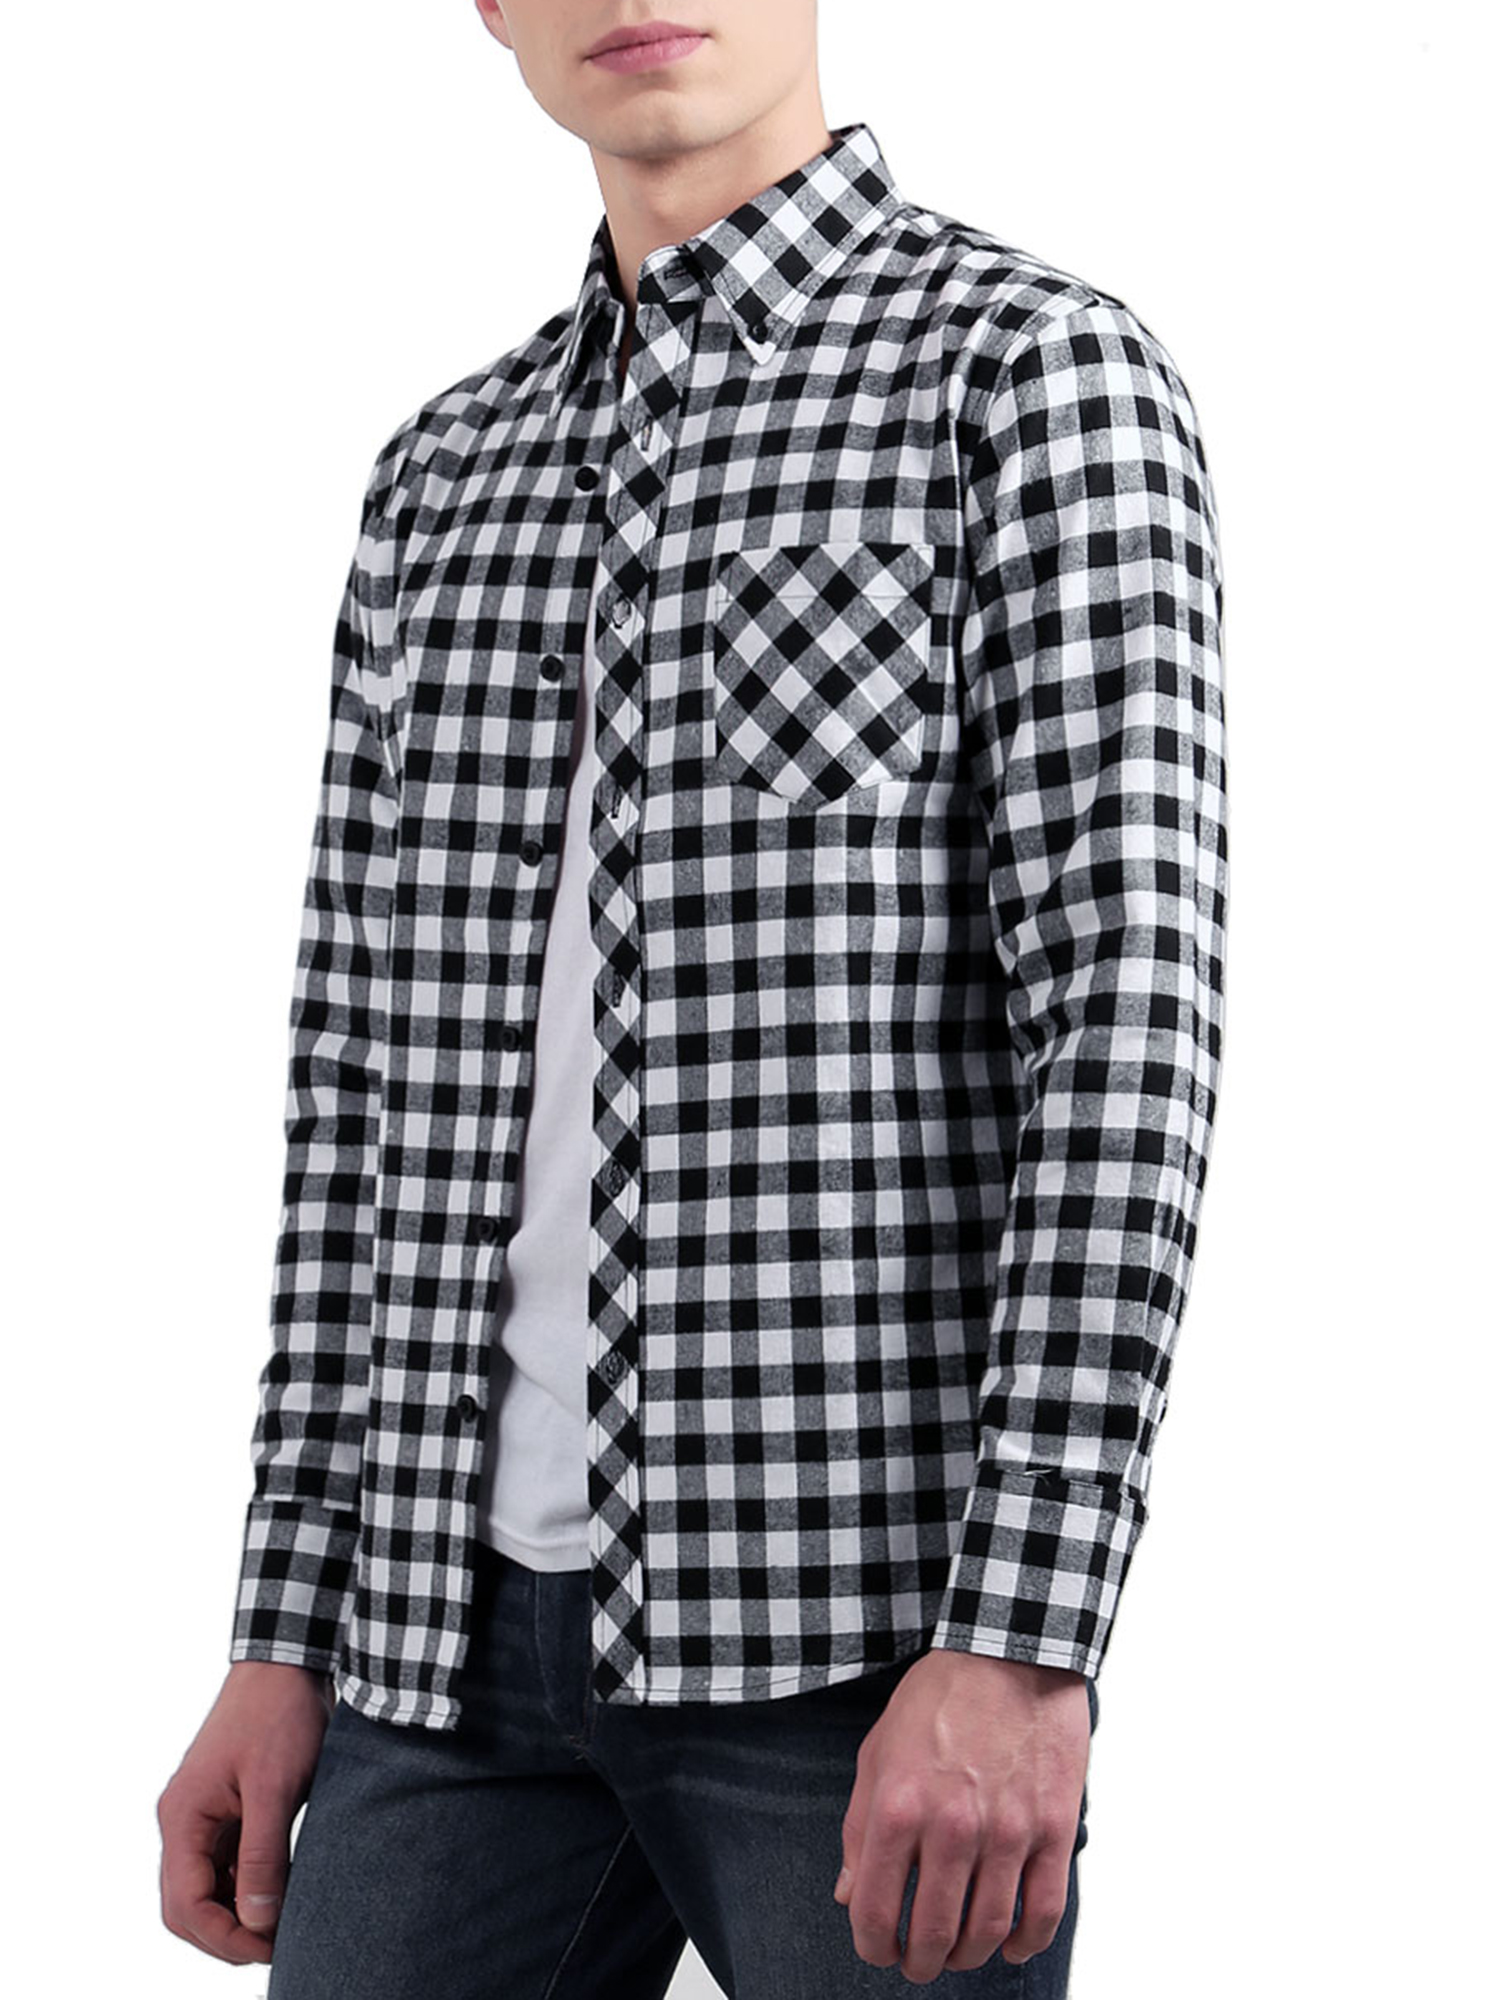 Men Point Collar Pocket Plaids Long Sleeves Button Down Shirt Black White L